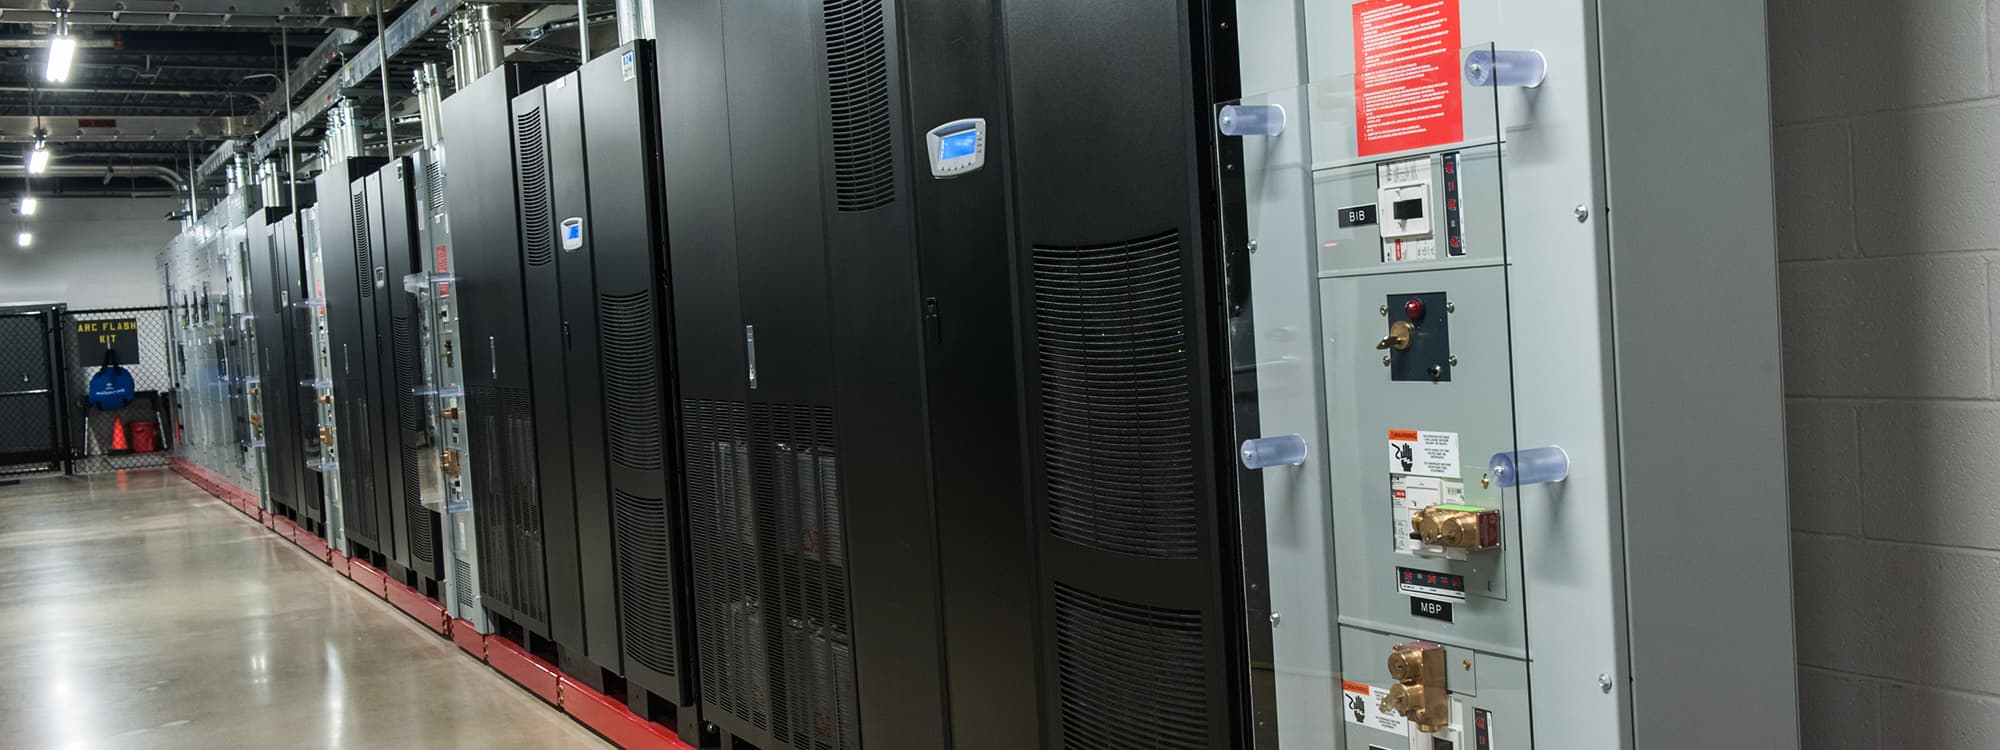 Chattanooga Data Center server cabinets